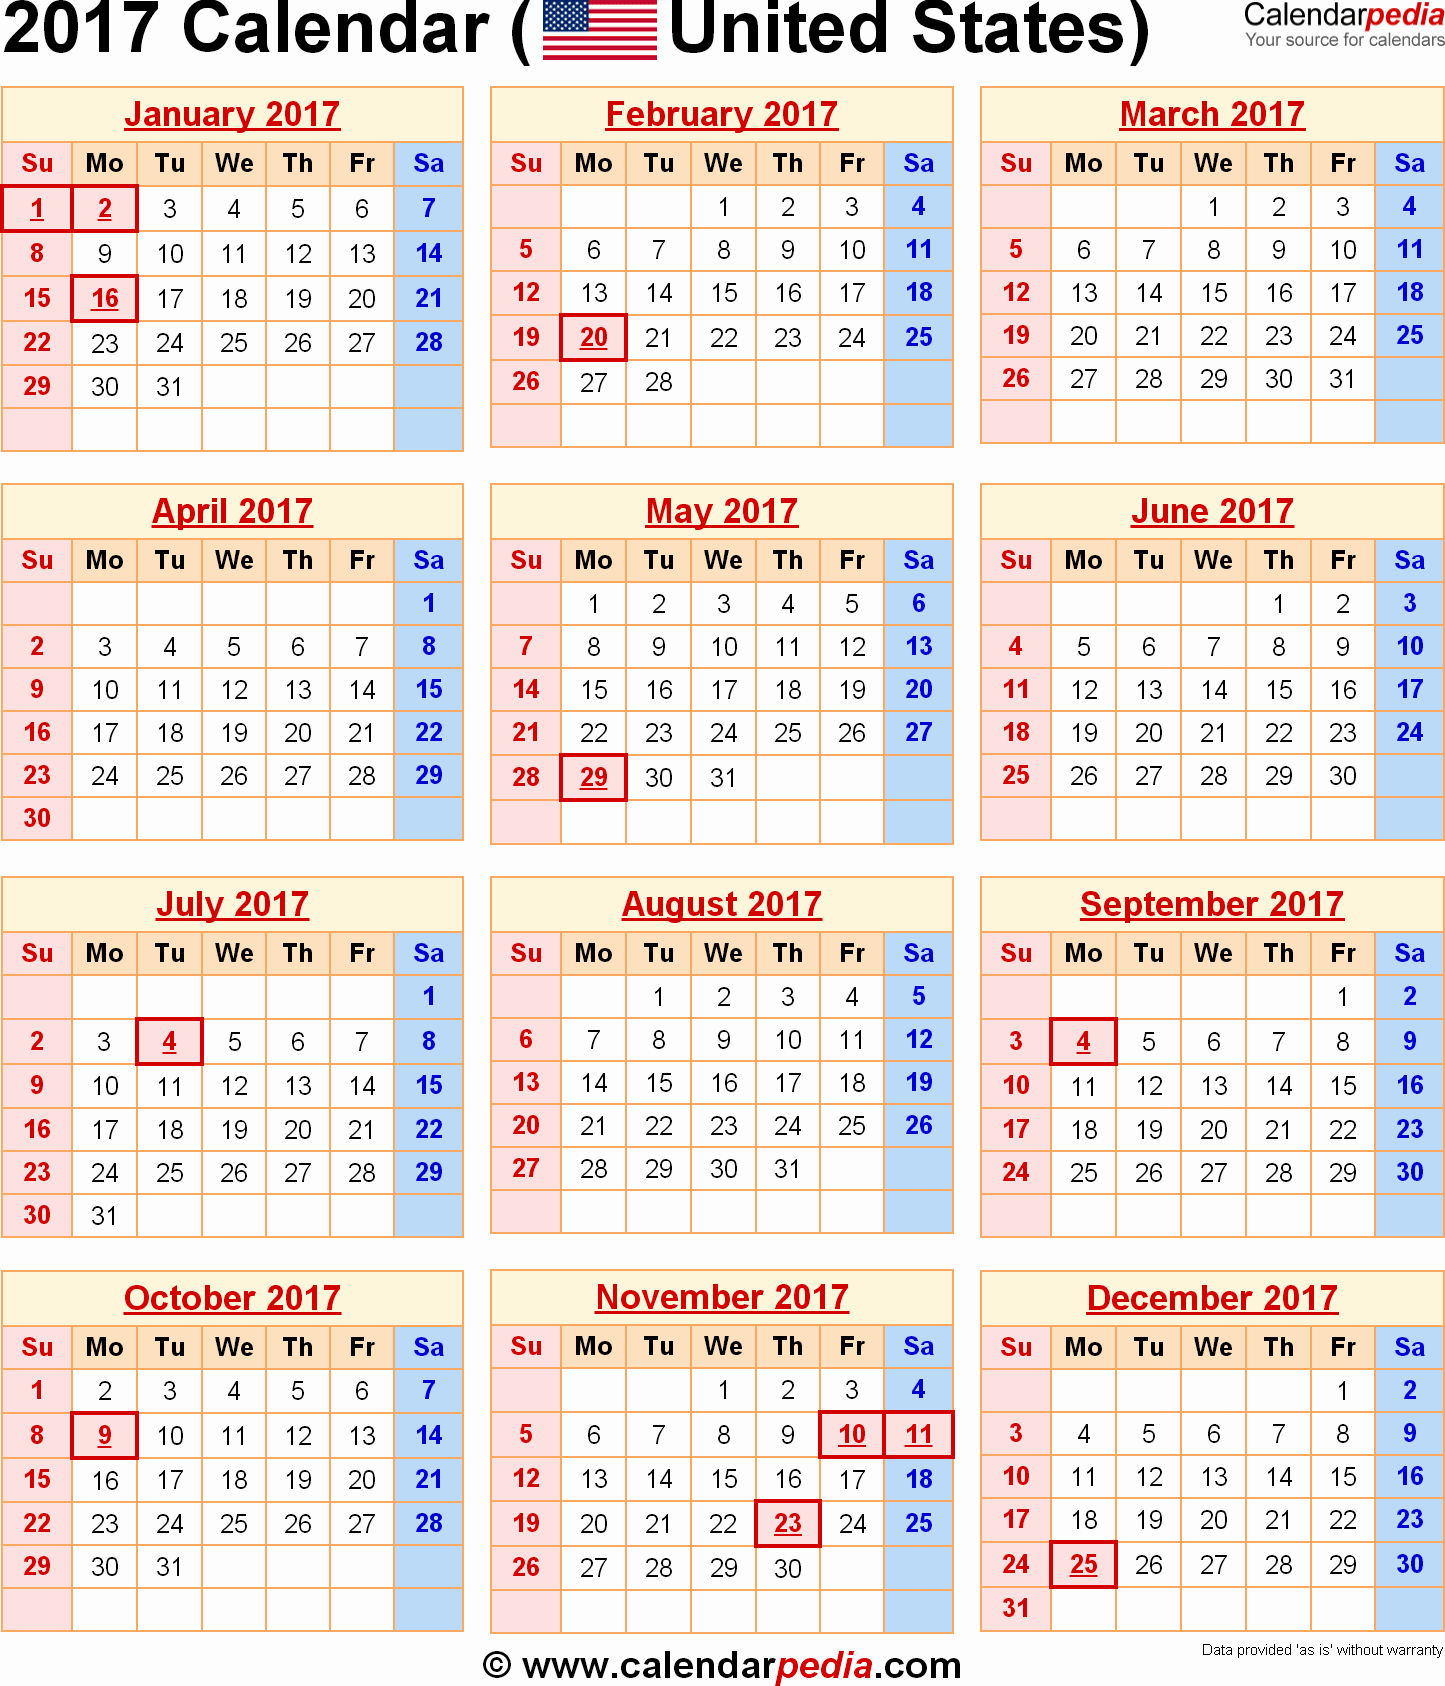 Calendar 2017 Template with Holidays Best Of 2017 Calendar with Holidays